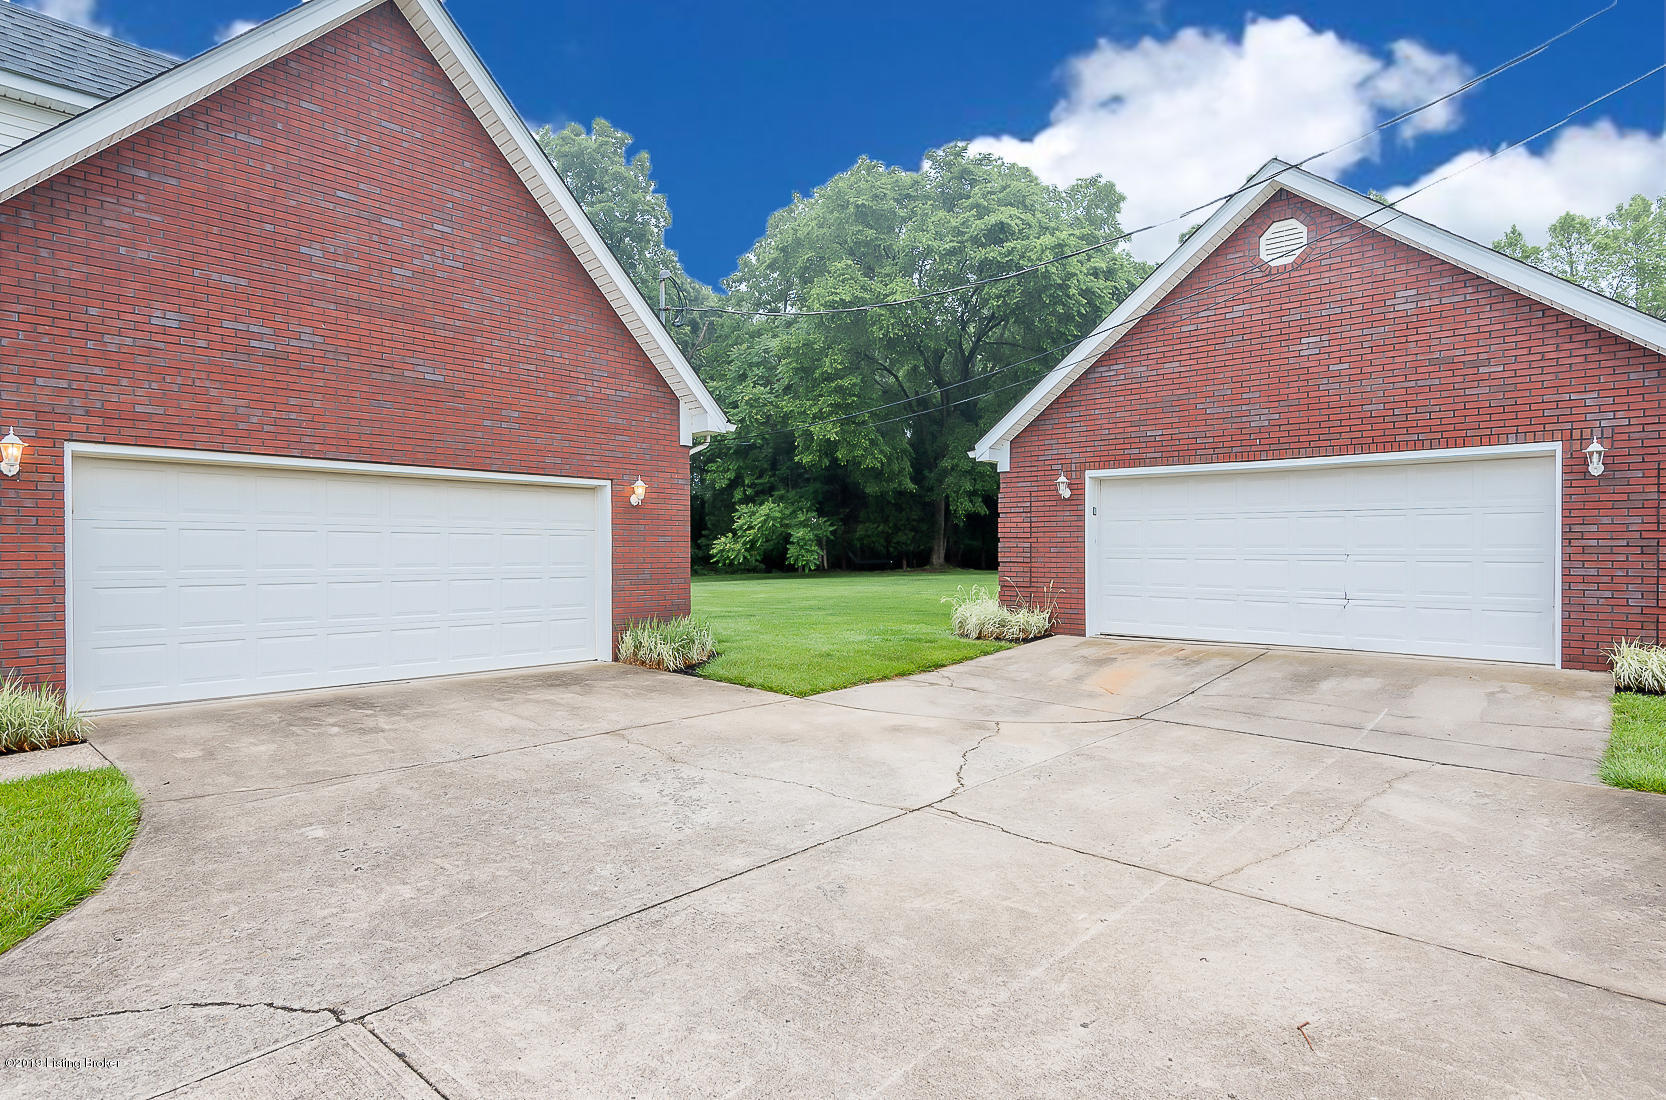 345 Wilkerson Dr, Mt Washington, Kentucky 40047, 4 Bedrooms Bedrooms, 8 Rooms Rooms,4 BathroomsBathrooms,Residential,For Sale,Wilkerson,1533135